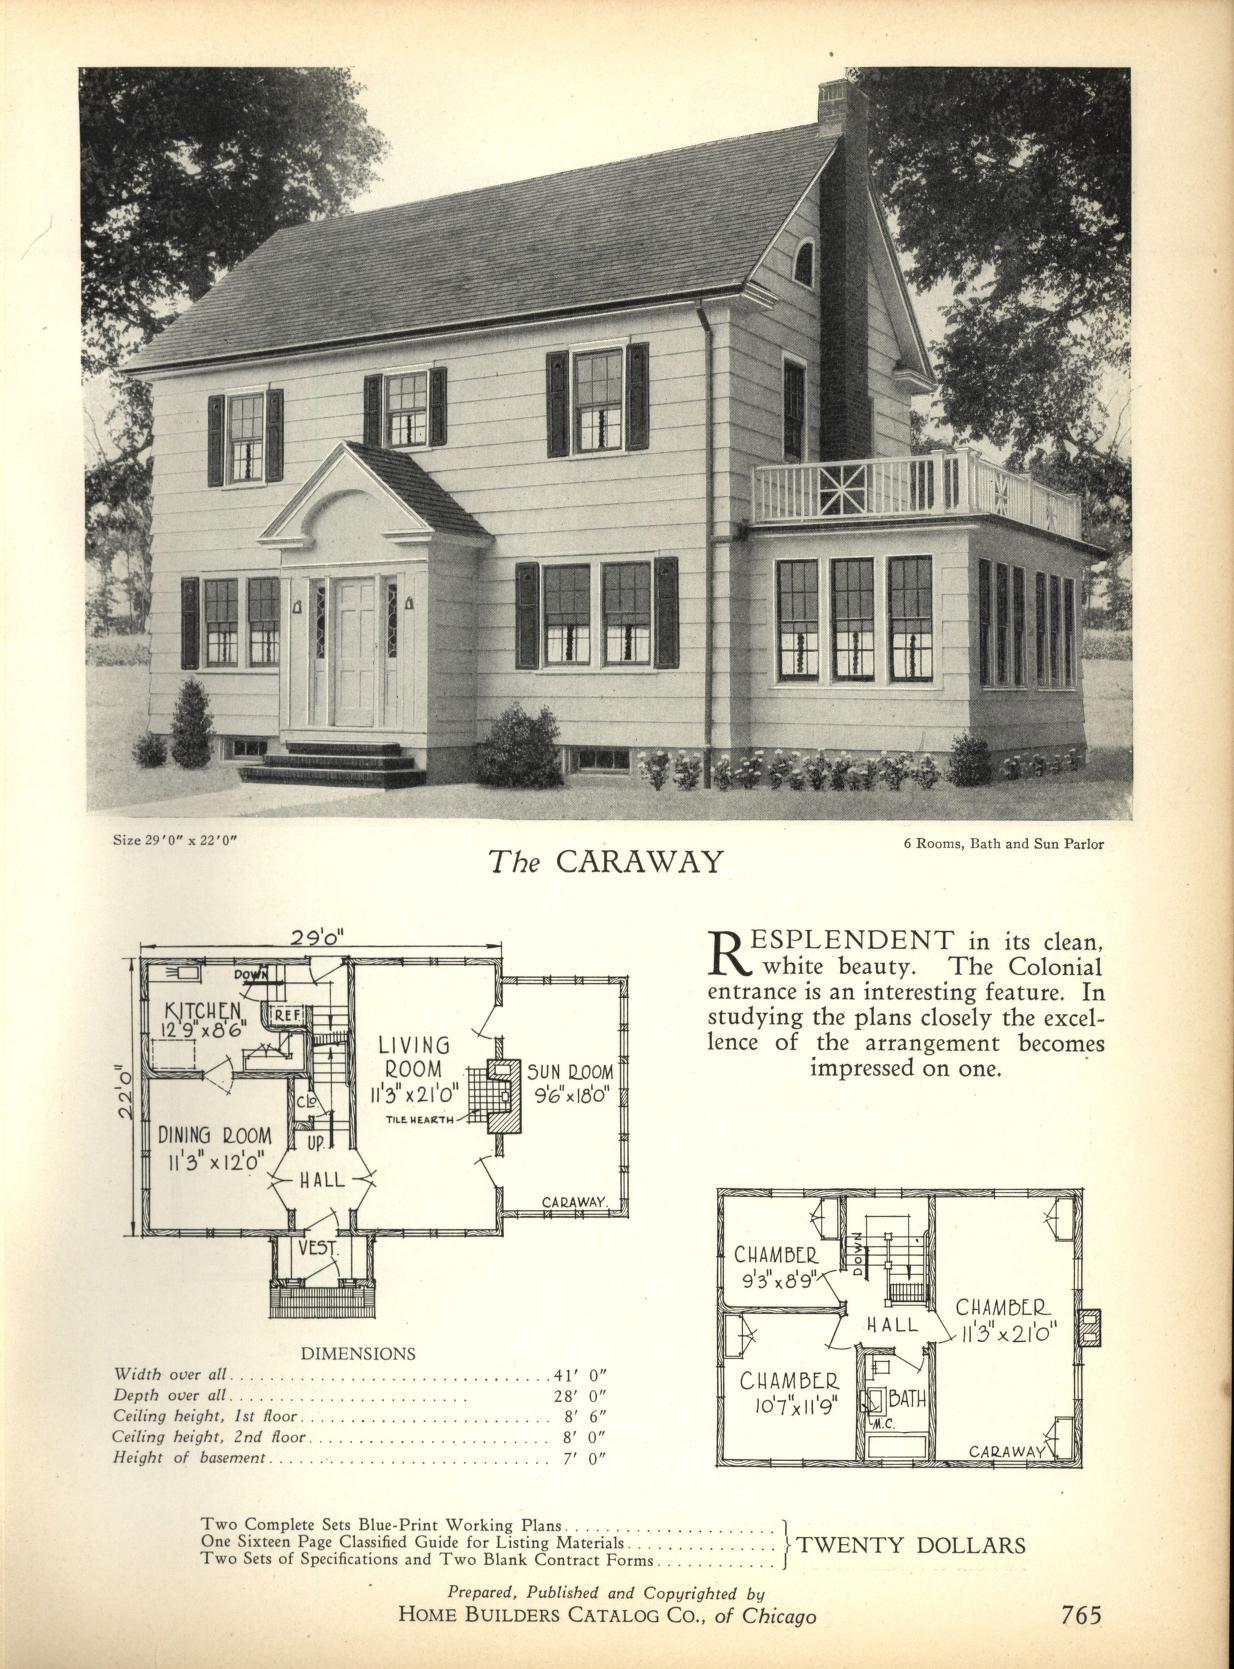 The caraway home builders catalog plans of all types of small homes by home builders catalog co published 1928